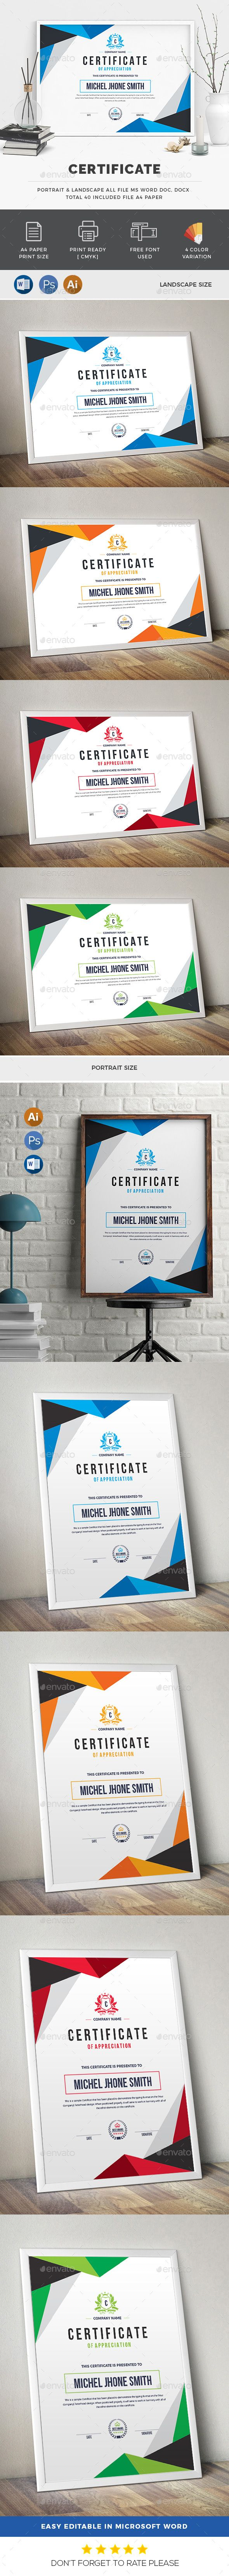 #Certificate - Certificates #Stationery Download here: https://graphicriver.net/item/certificate/20233891?ref=alena994